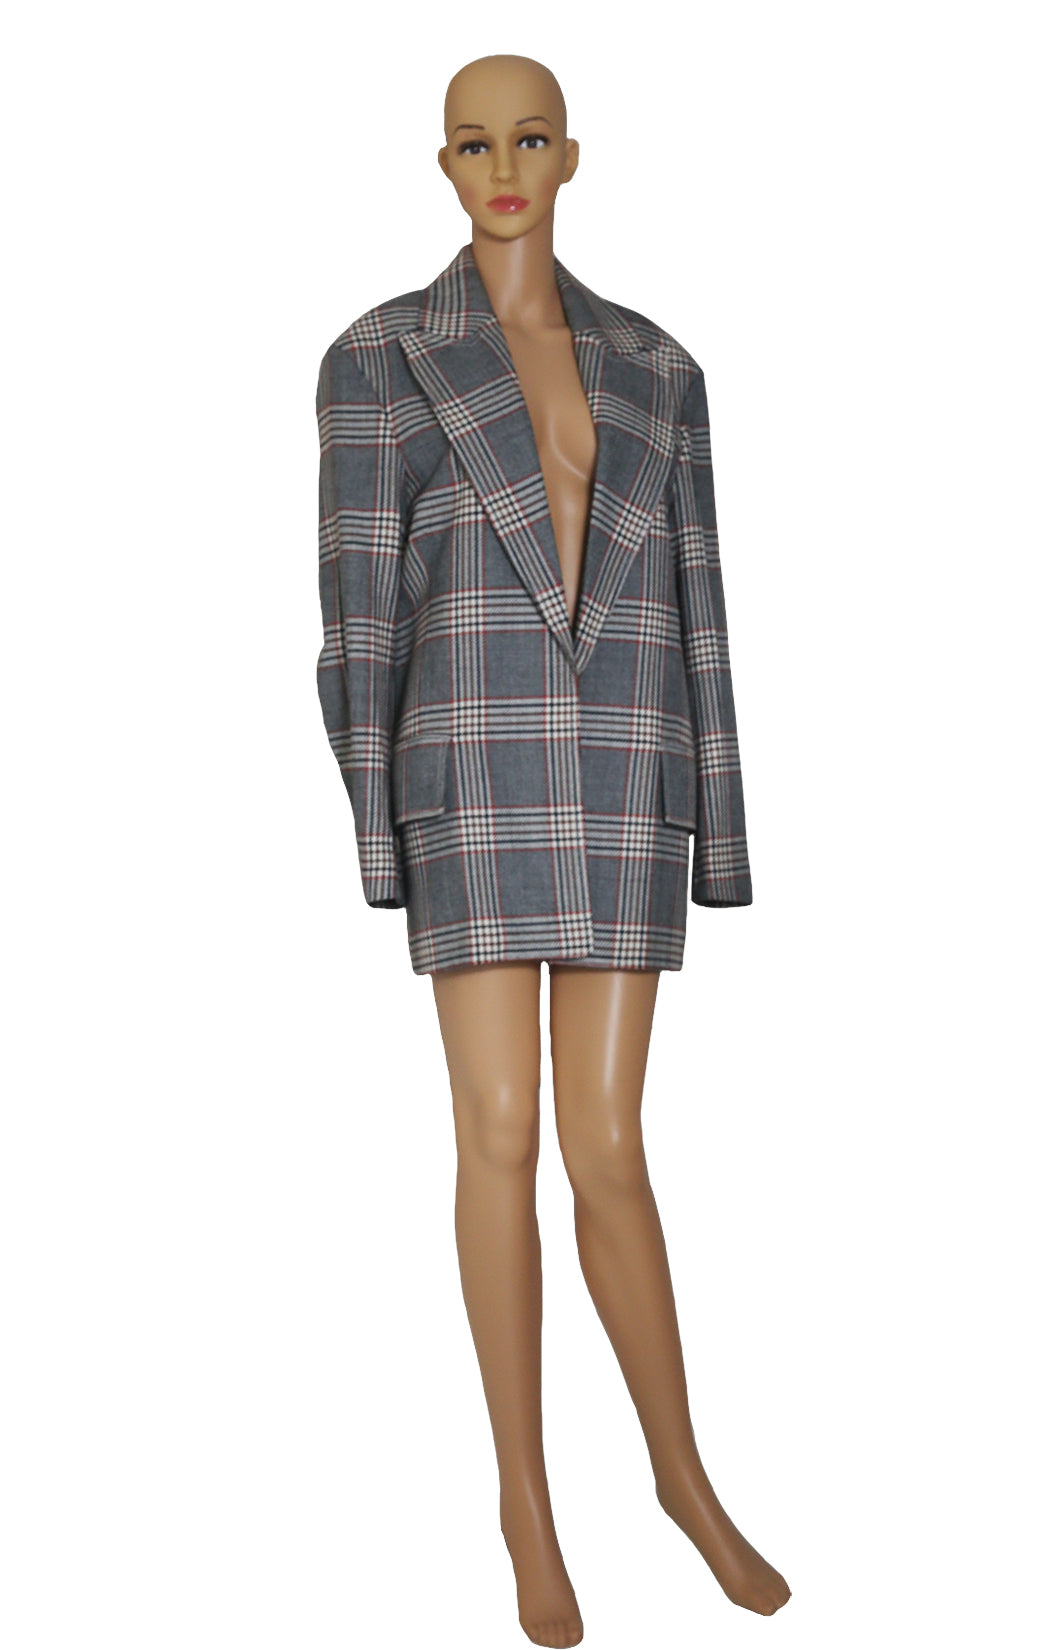 Front view of CELINE Plaid Coat Size: FR 36 (US 4-6)